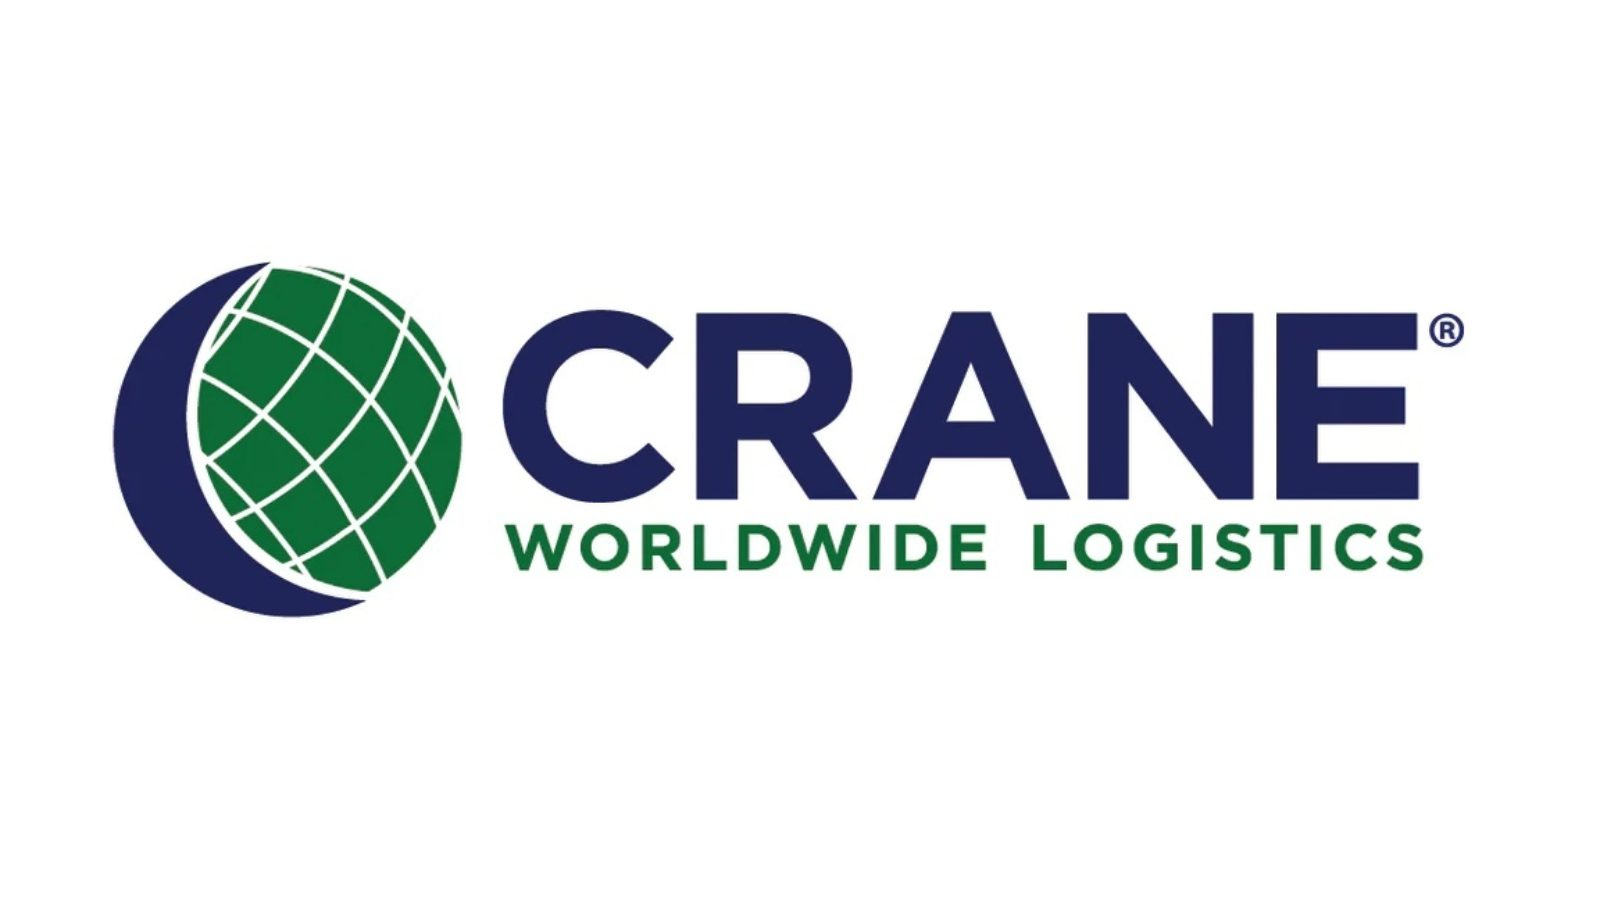 Driving supply chain technology with new leadership at Crane Worldwide Logistics